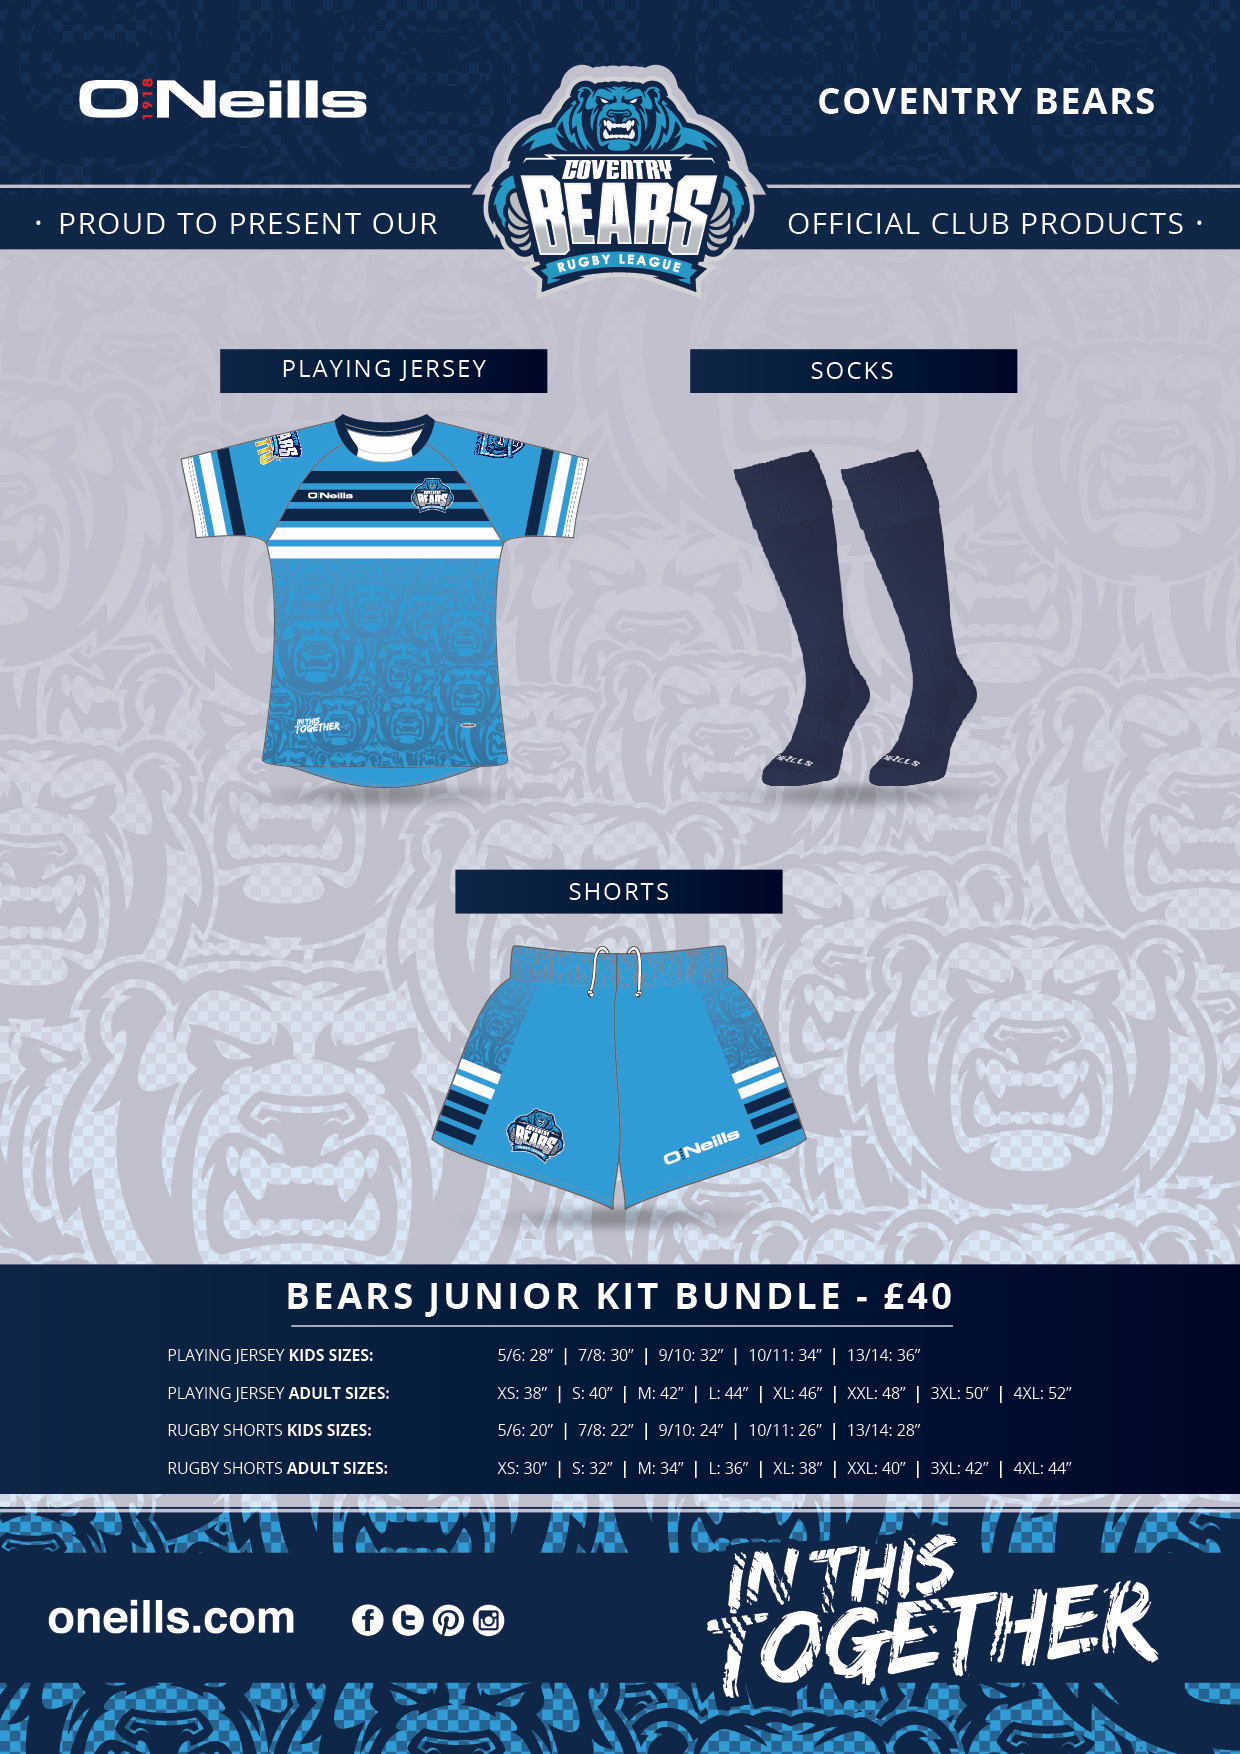 New Bears Junior Kit